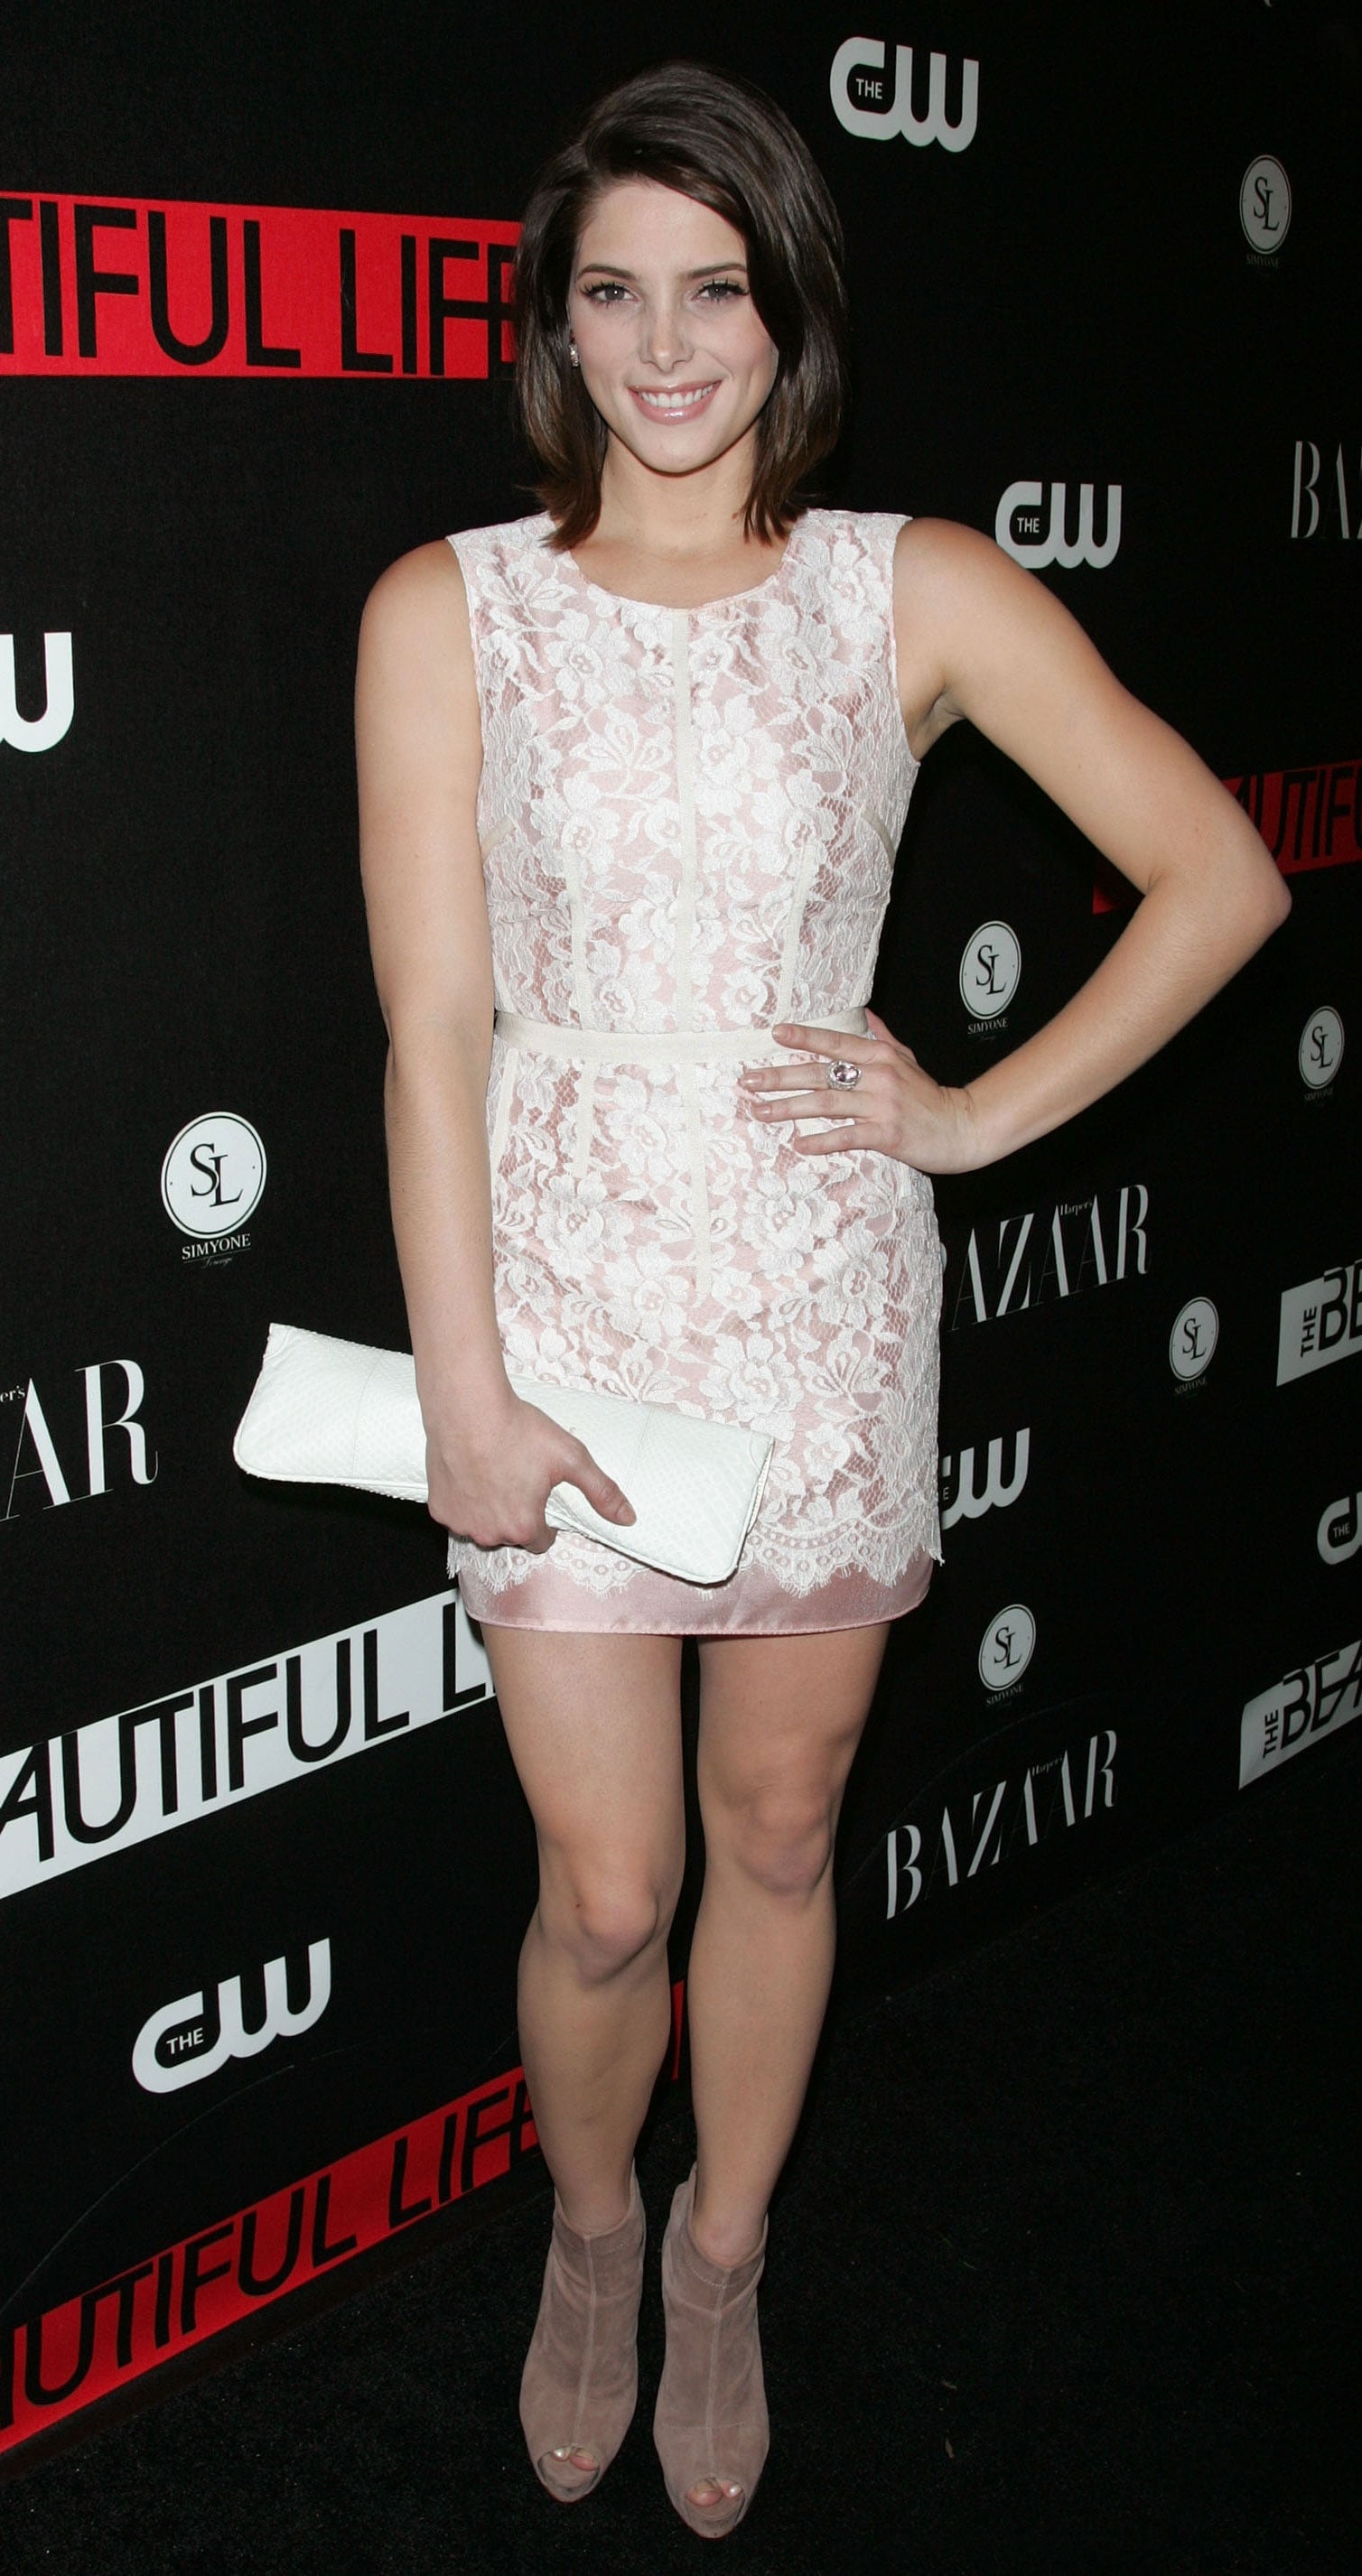 Stepping out for a CW party in a white lace LWD in 2009.